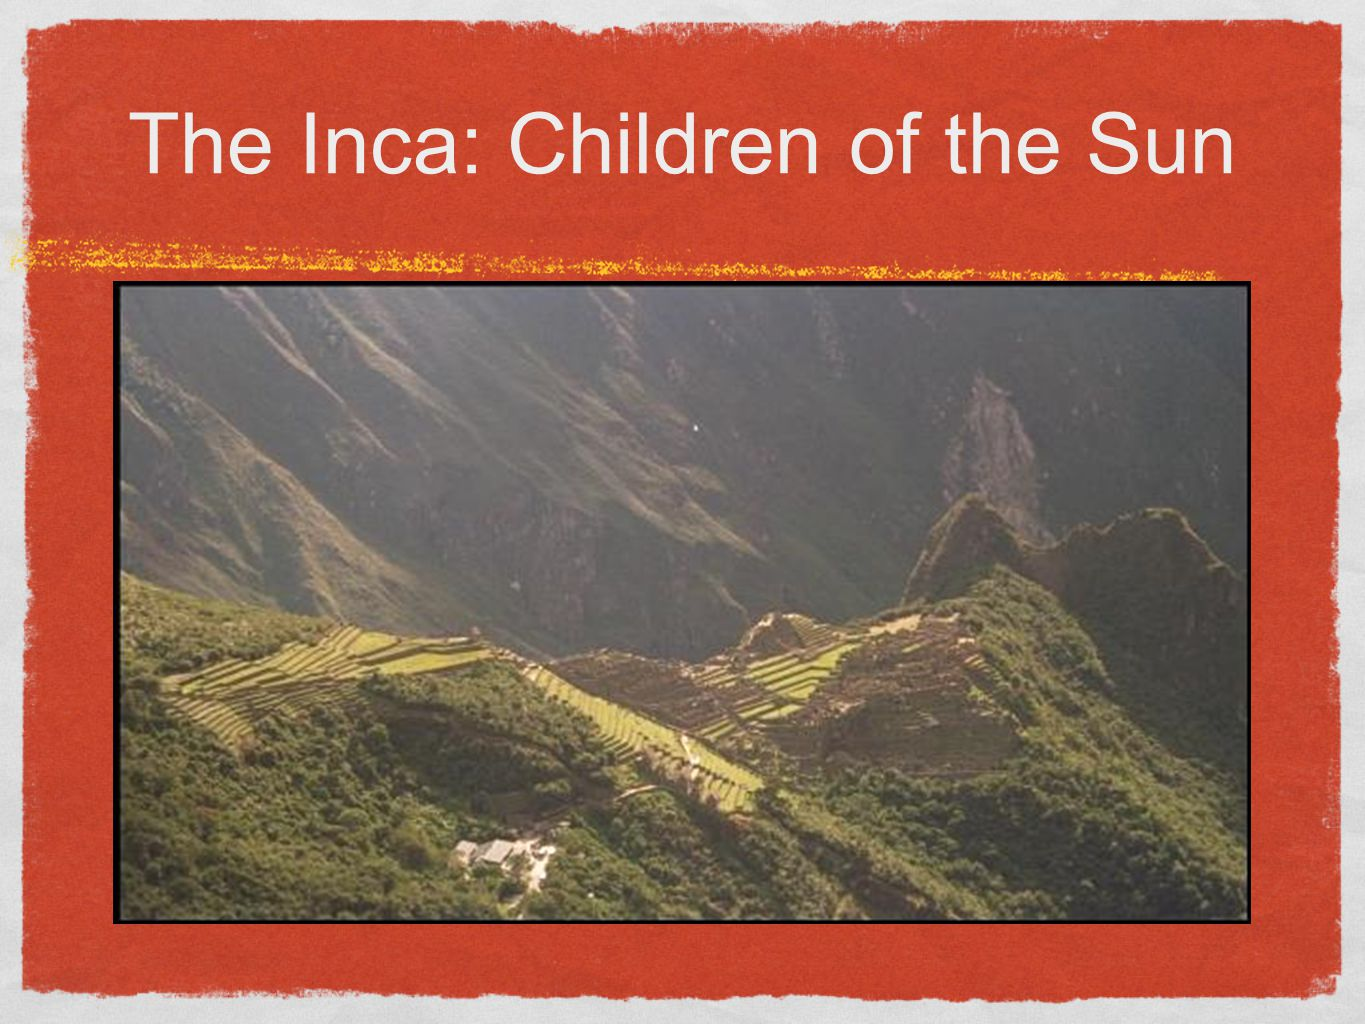 The Inca: Children of the Sun